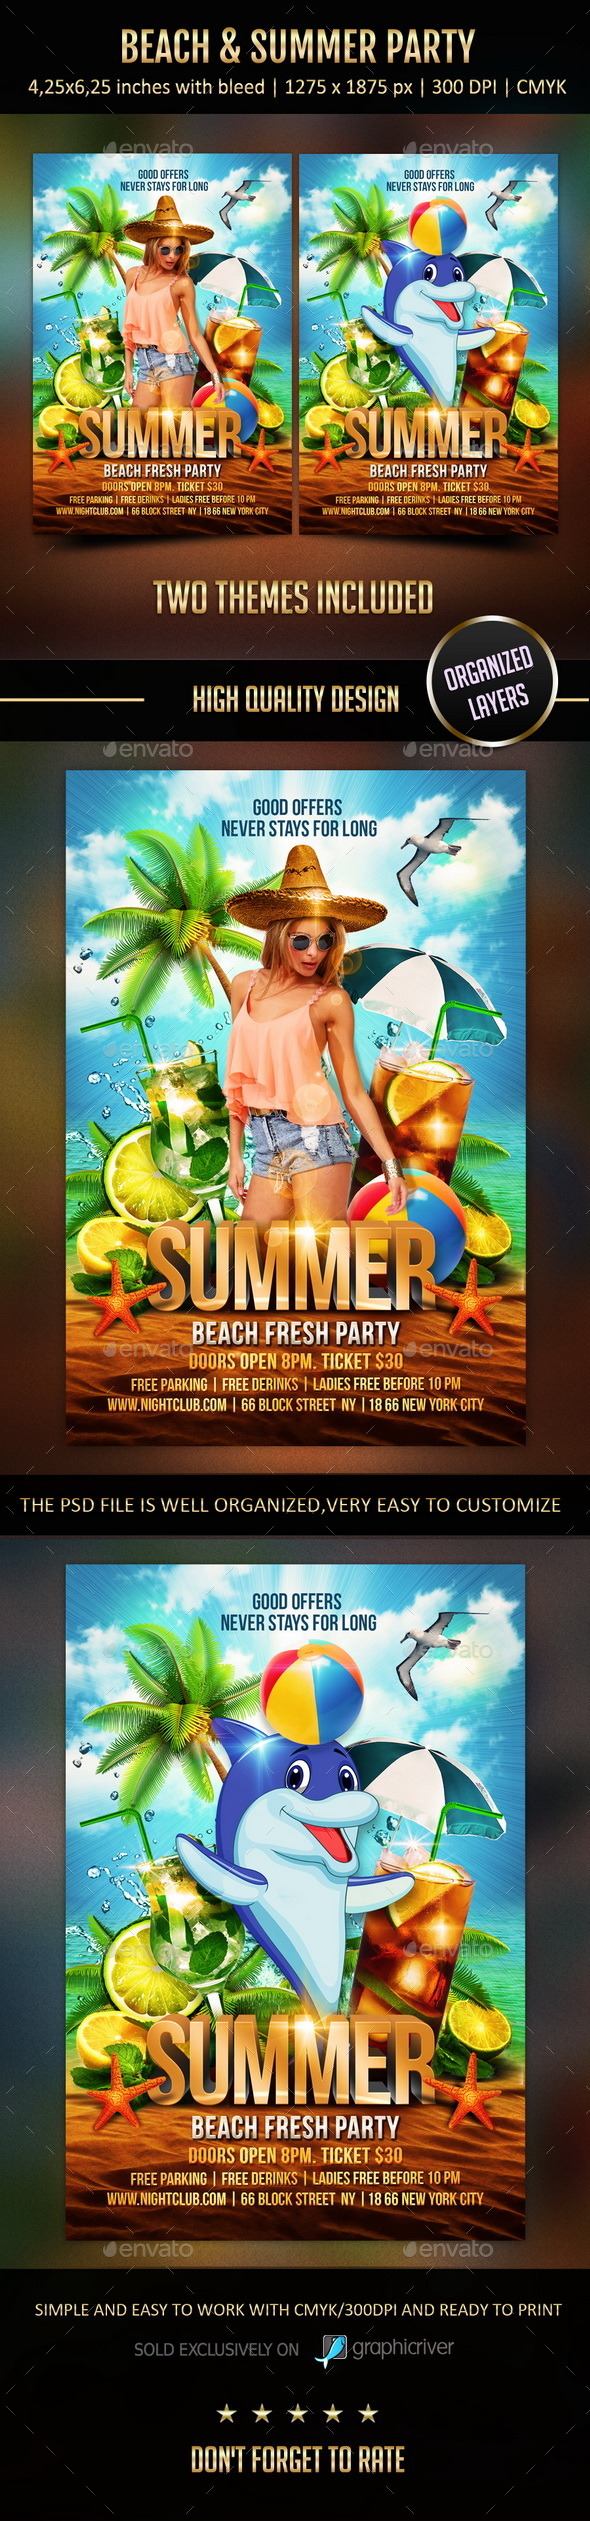 GraphicRiver Beach & Summer Party 11584729